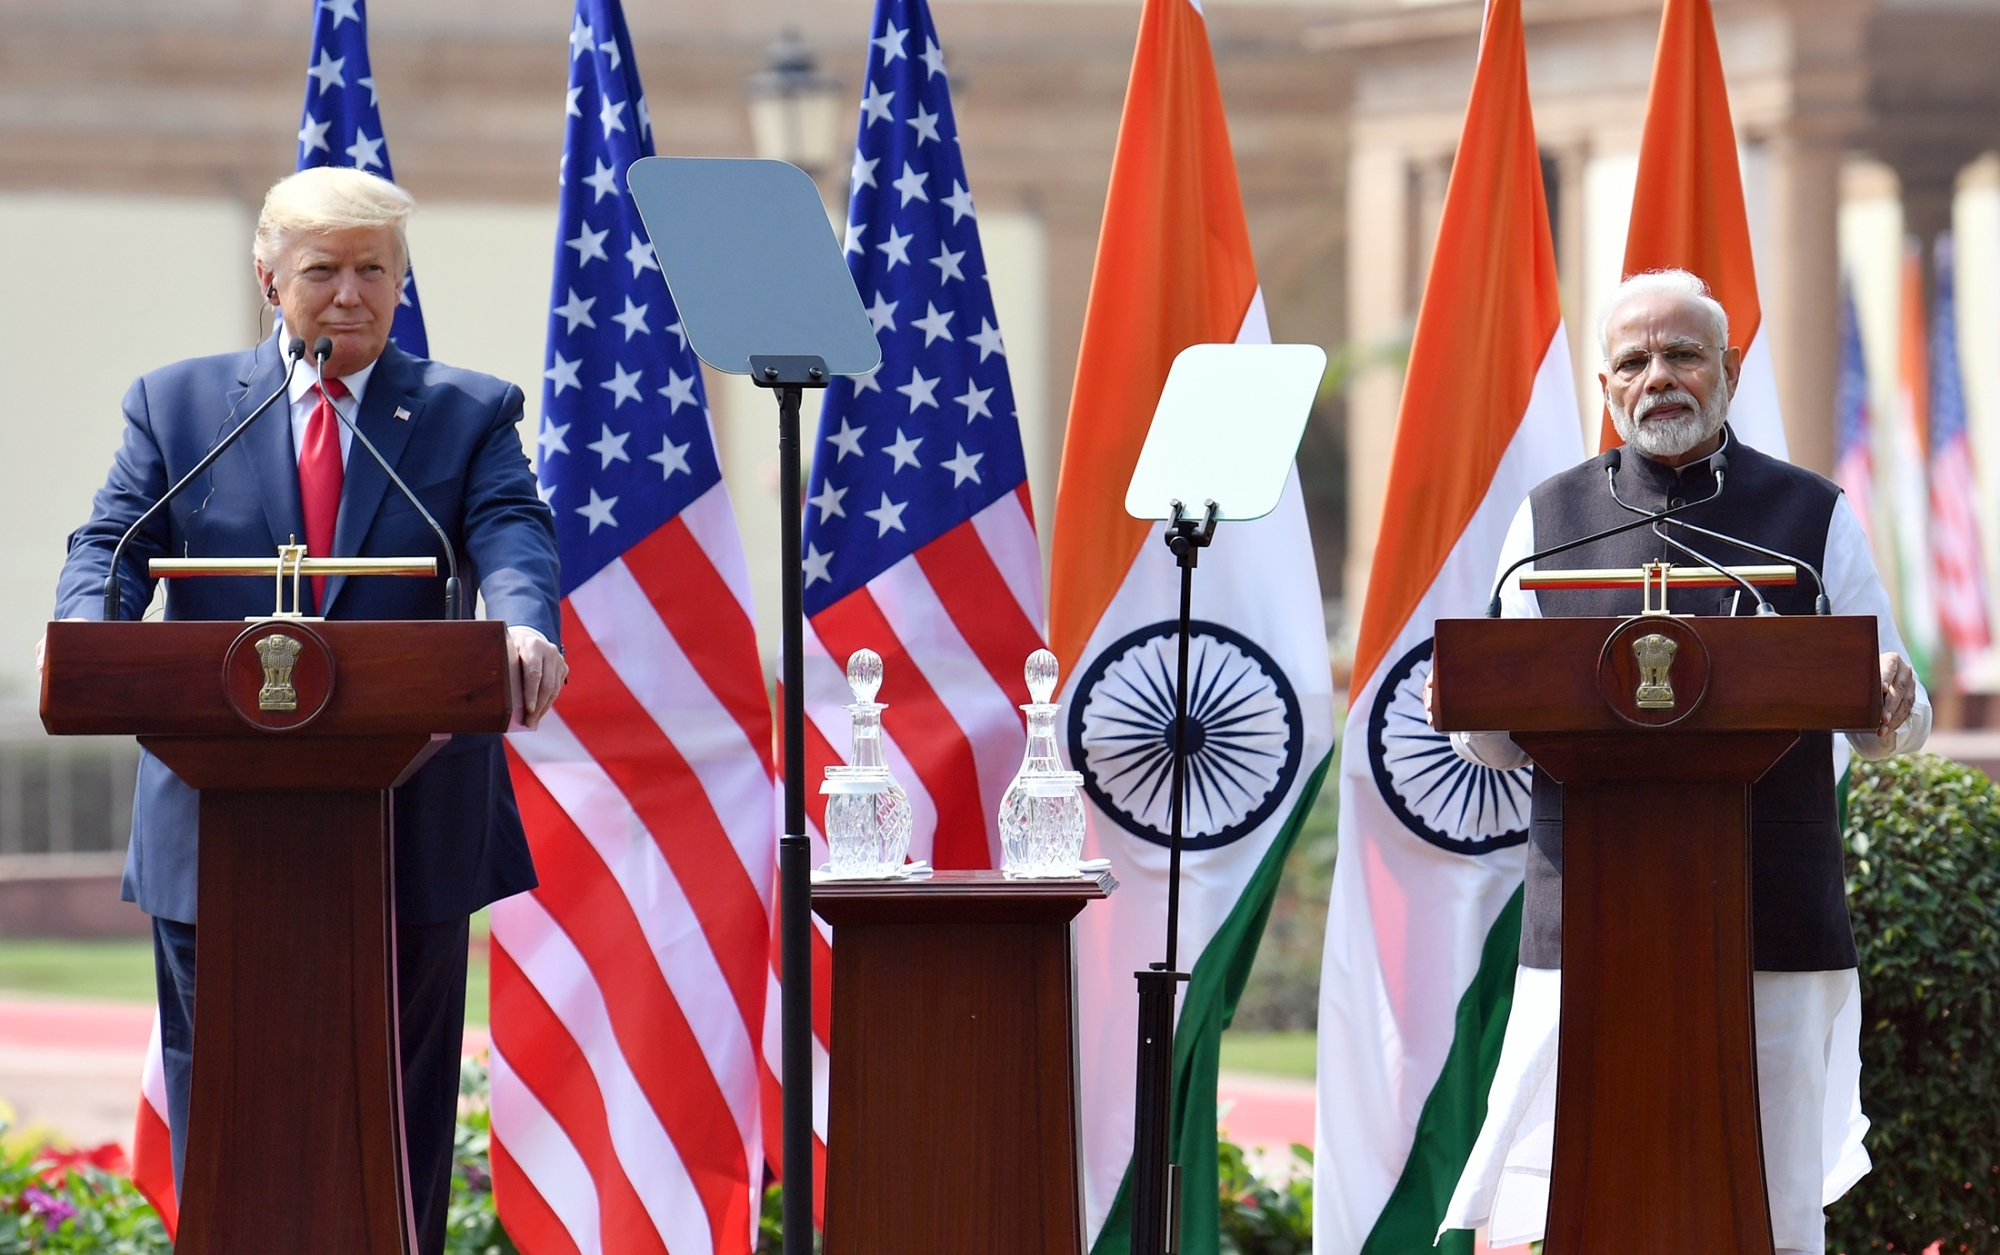 New Delhi: Prime Minister Narendra Modi and US President Donald Trump address Joint Press Meet at Hyderabad House in New Delhi on Feb 25, 2020. (Photo: IANS/PIB)